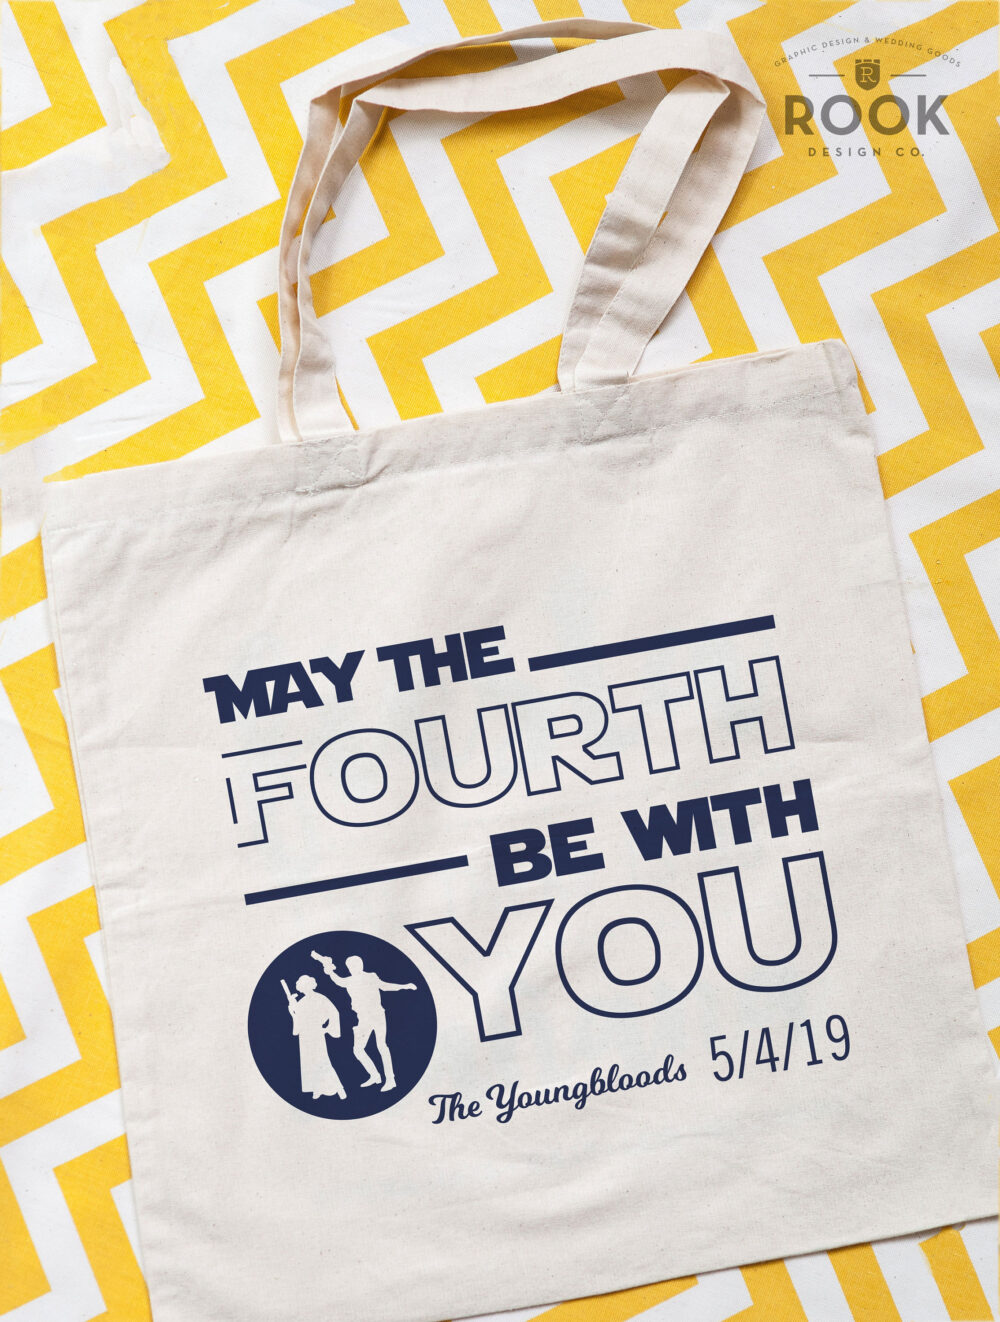 May The Fourth Be With You Tote Bags, Funny Star Wars Wedding Gift, Totes, 4Th Favors, Bags